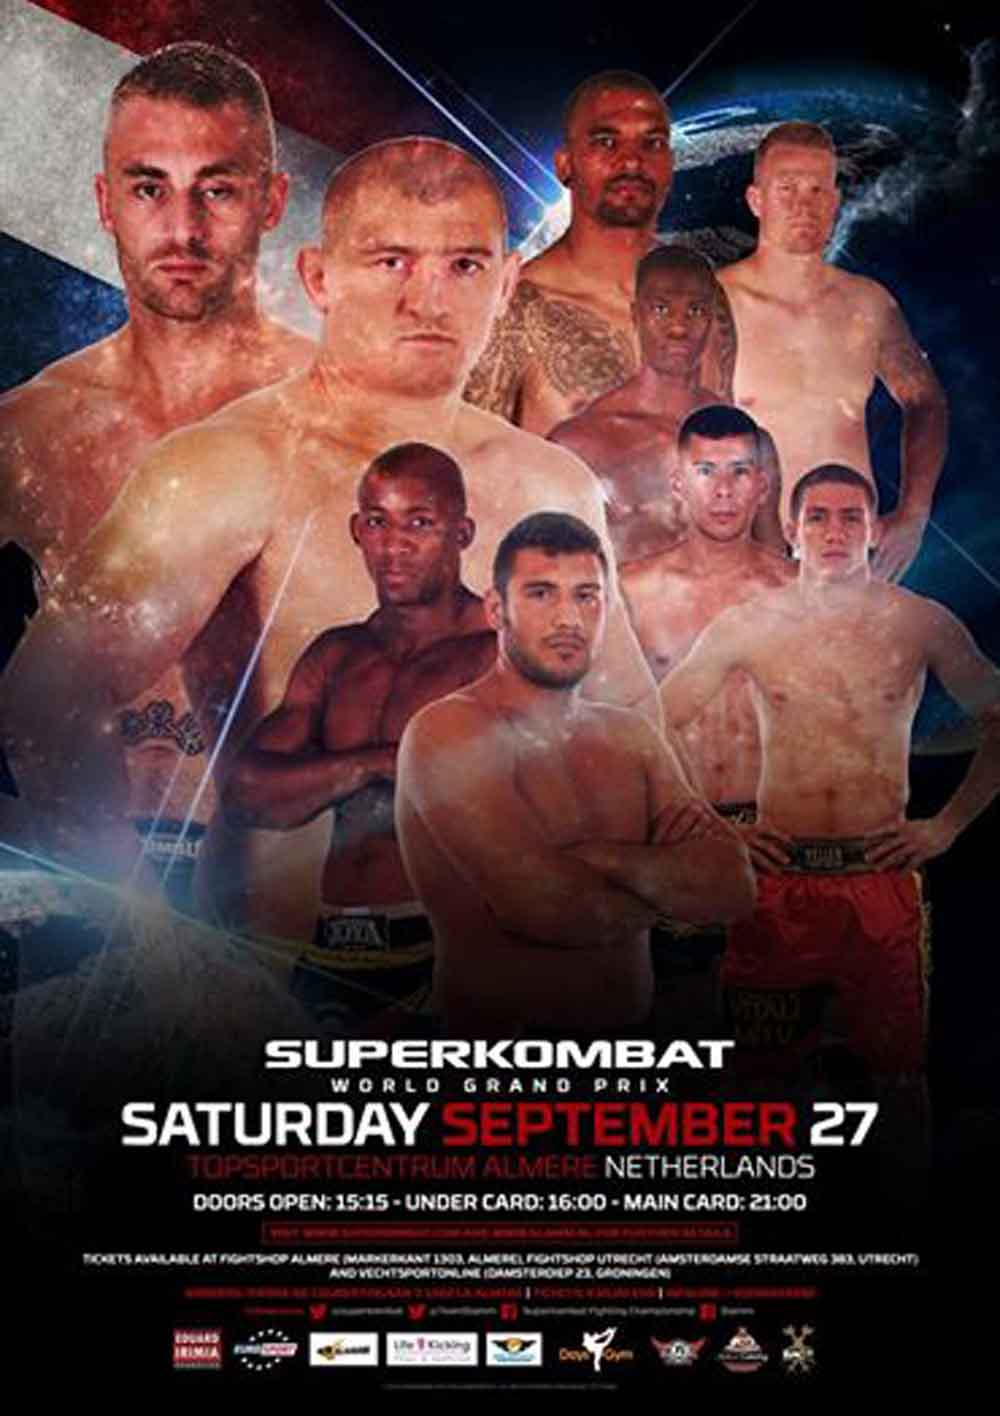 SUPERKOMBAT GRAND PRIX HOLLAND